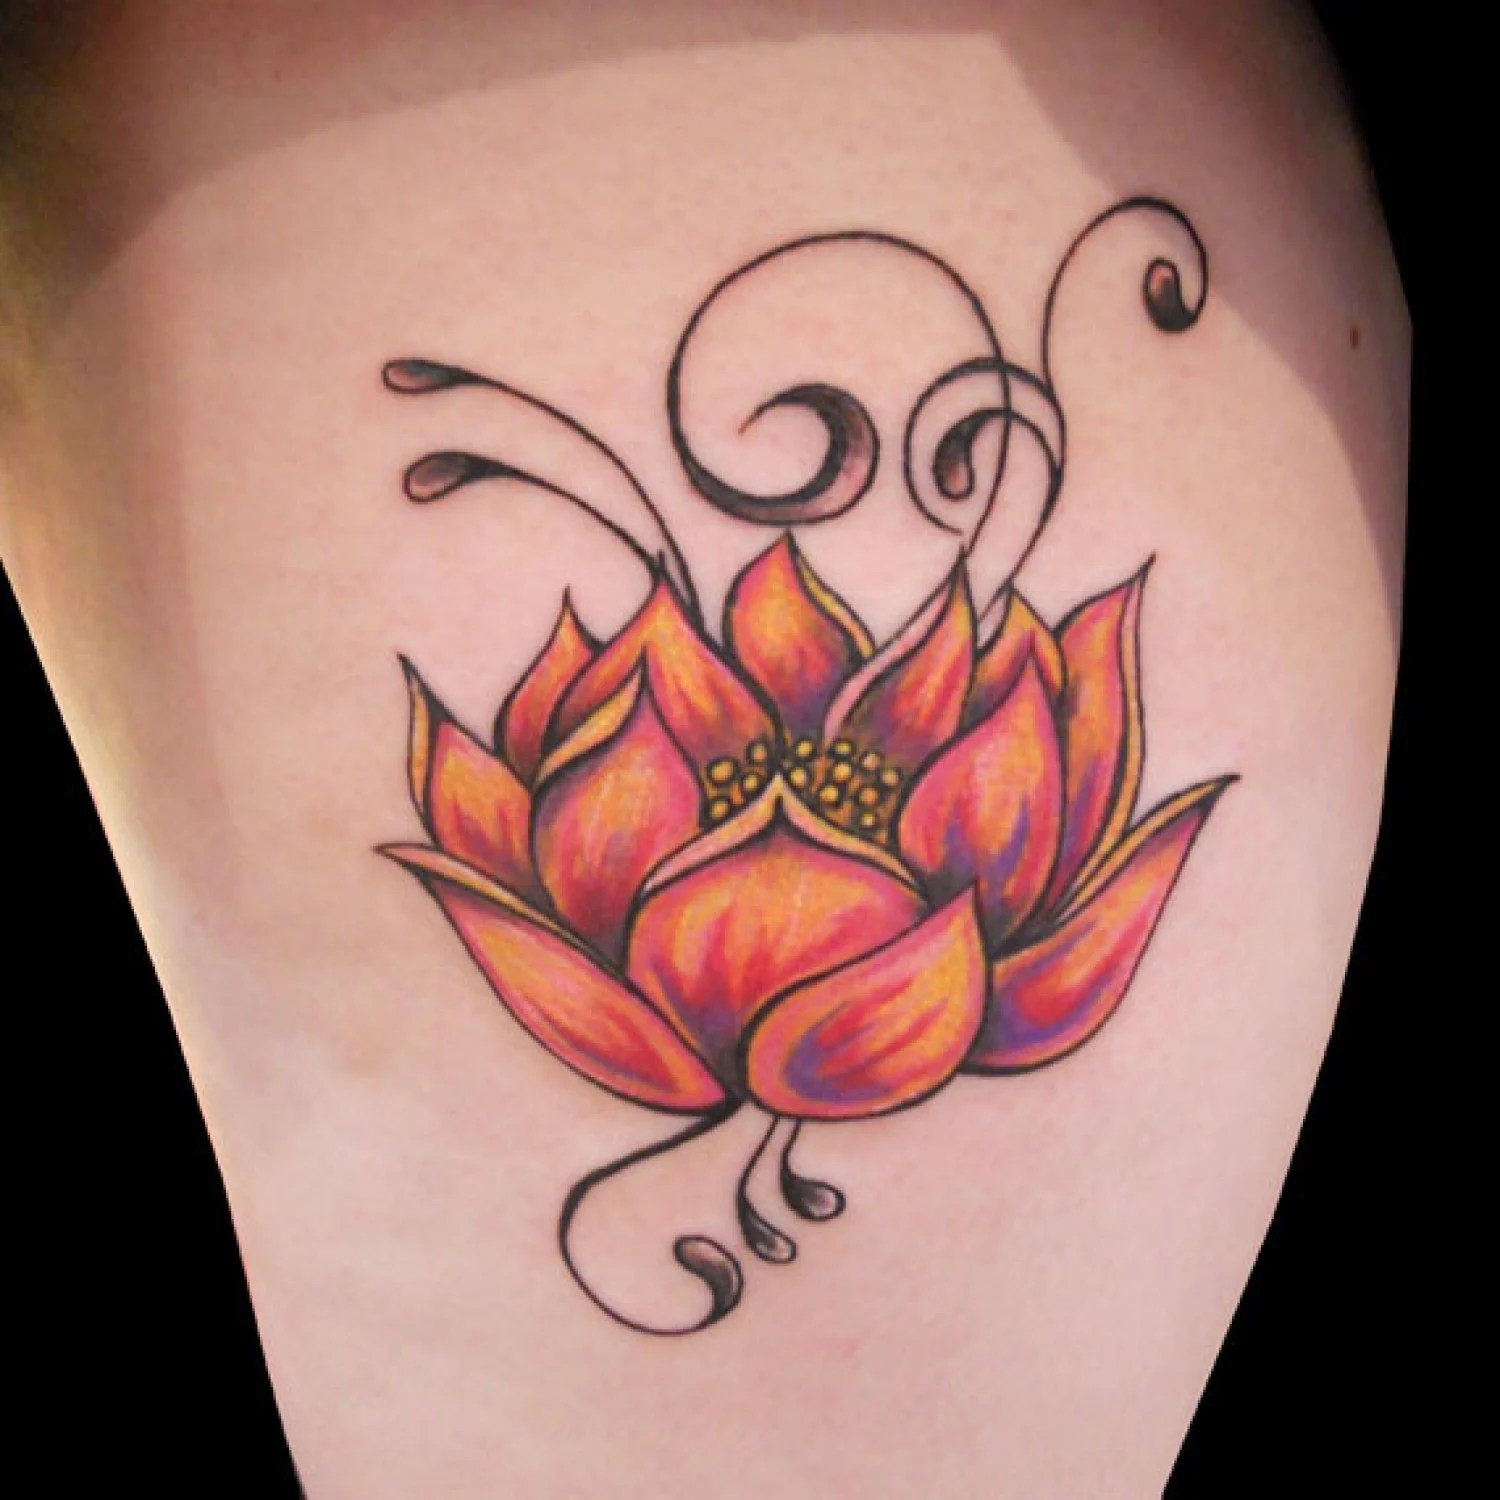 41 Enticing Lotus Flower Tattoos Ideas And Designs